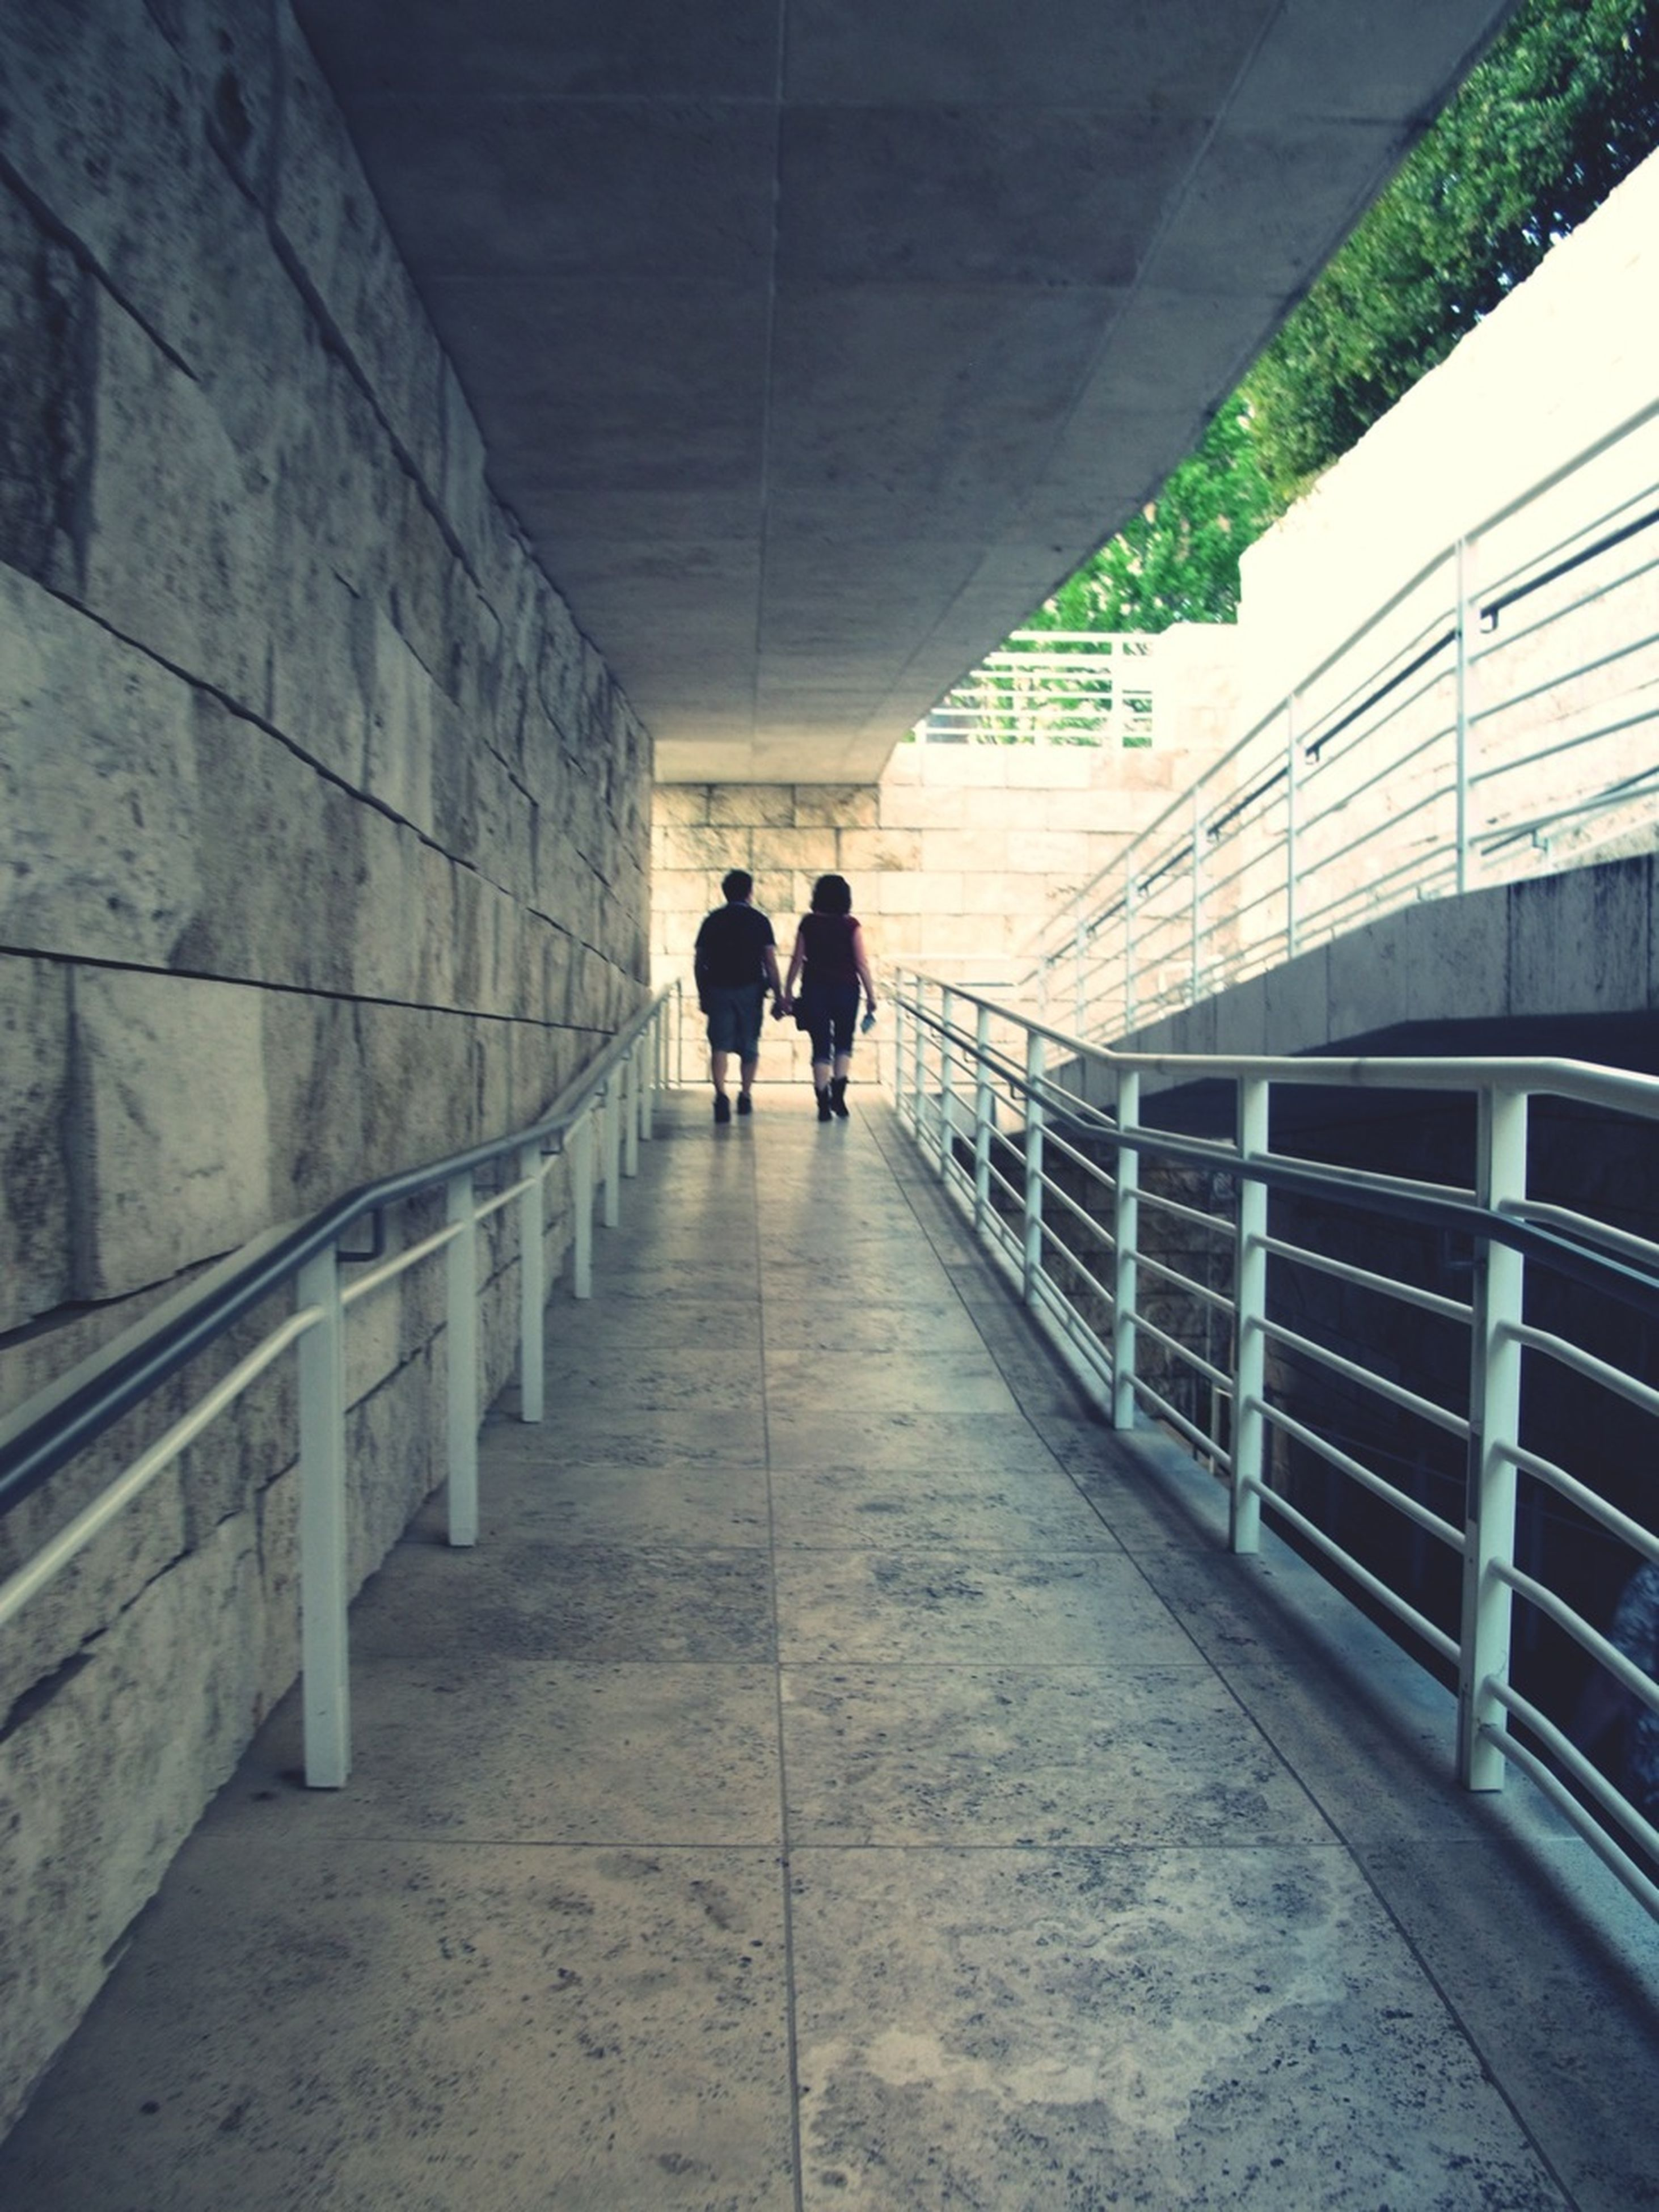 indoors, architecture, walking, full length, the way forward, rear view, men, built structure, lifestyles, tunnel, corridor, person, diminishing perspective, silhouette, wall - building feature, ceiling, leisure activity, arch